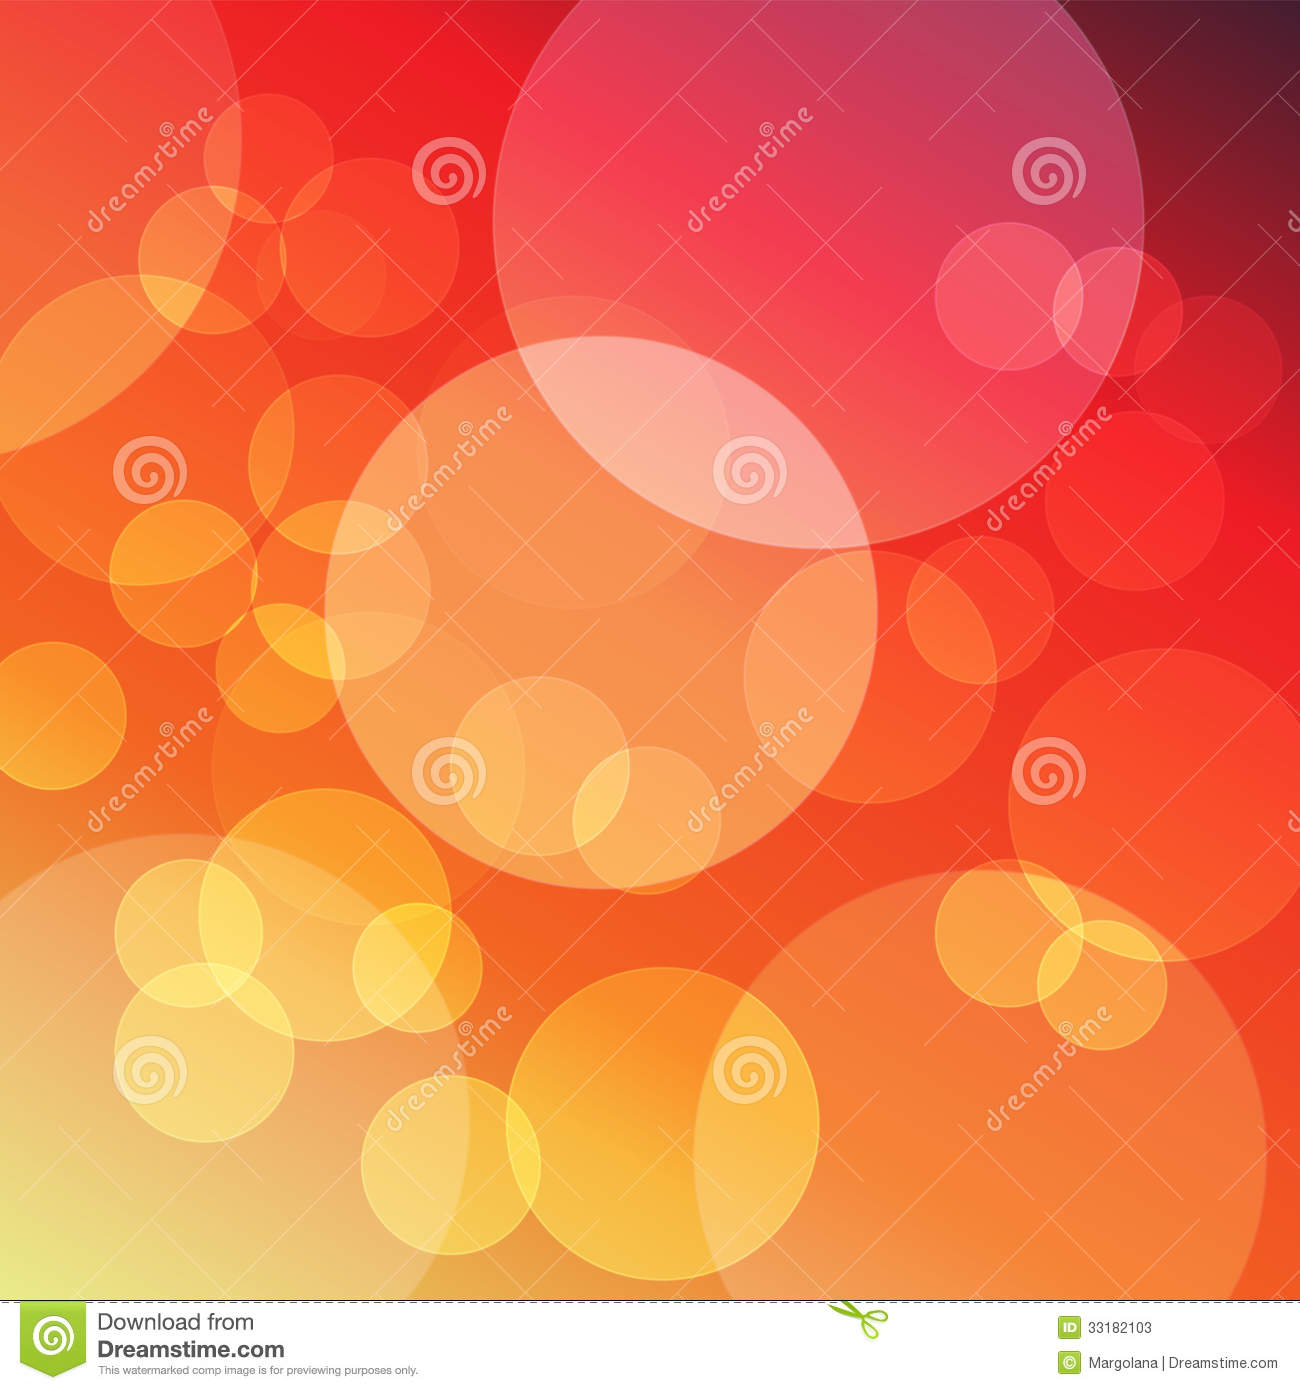 abstract background blur circle - photo #31